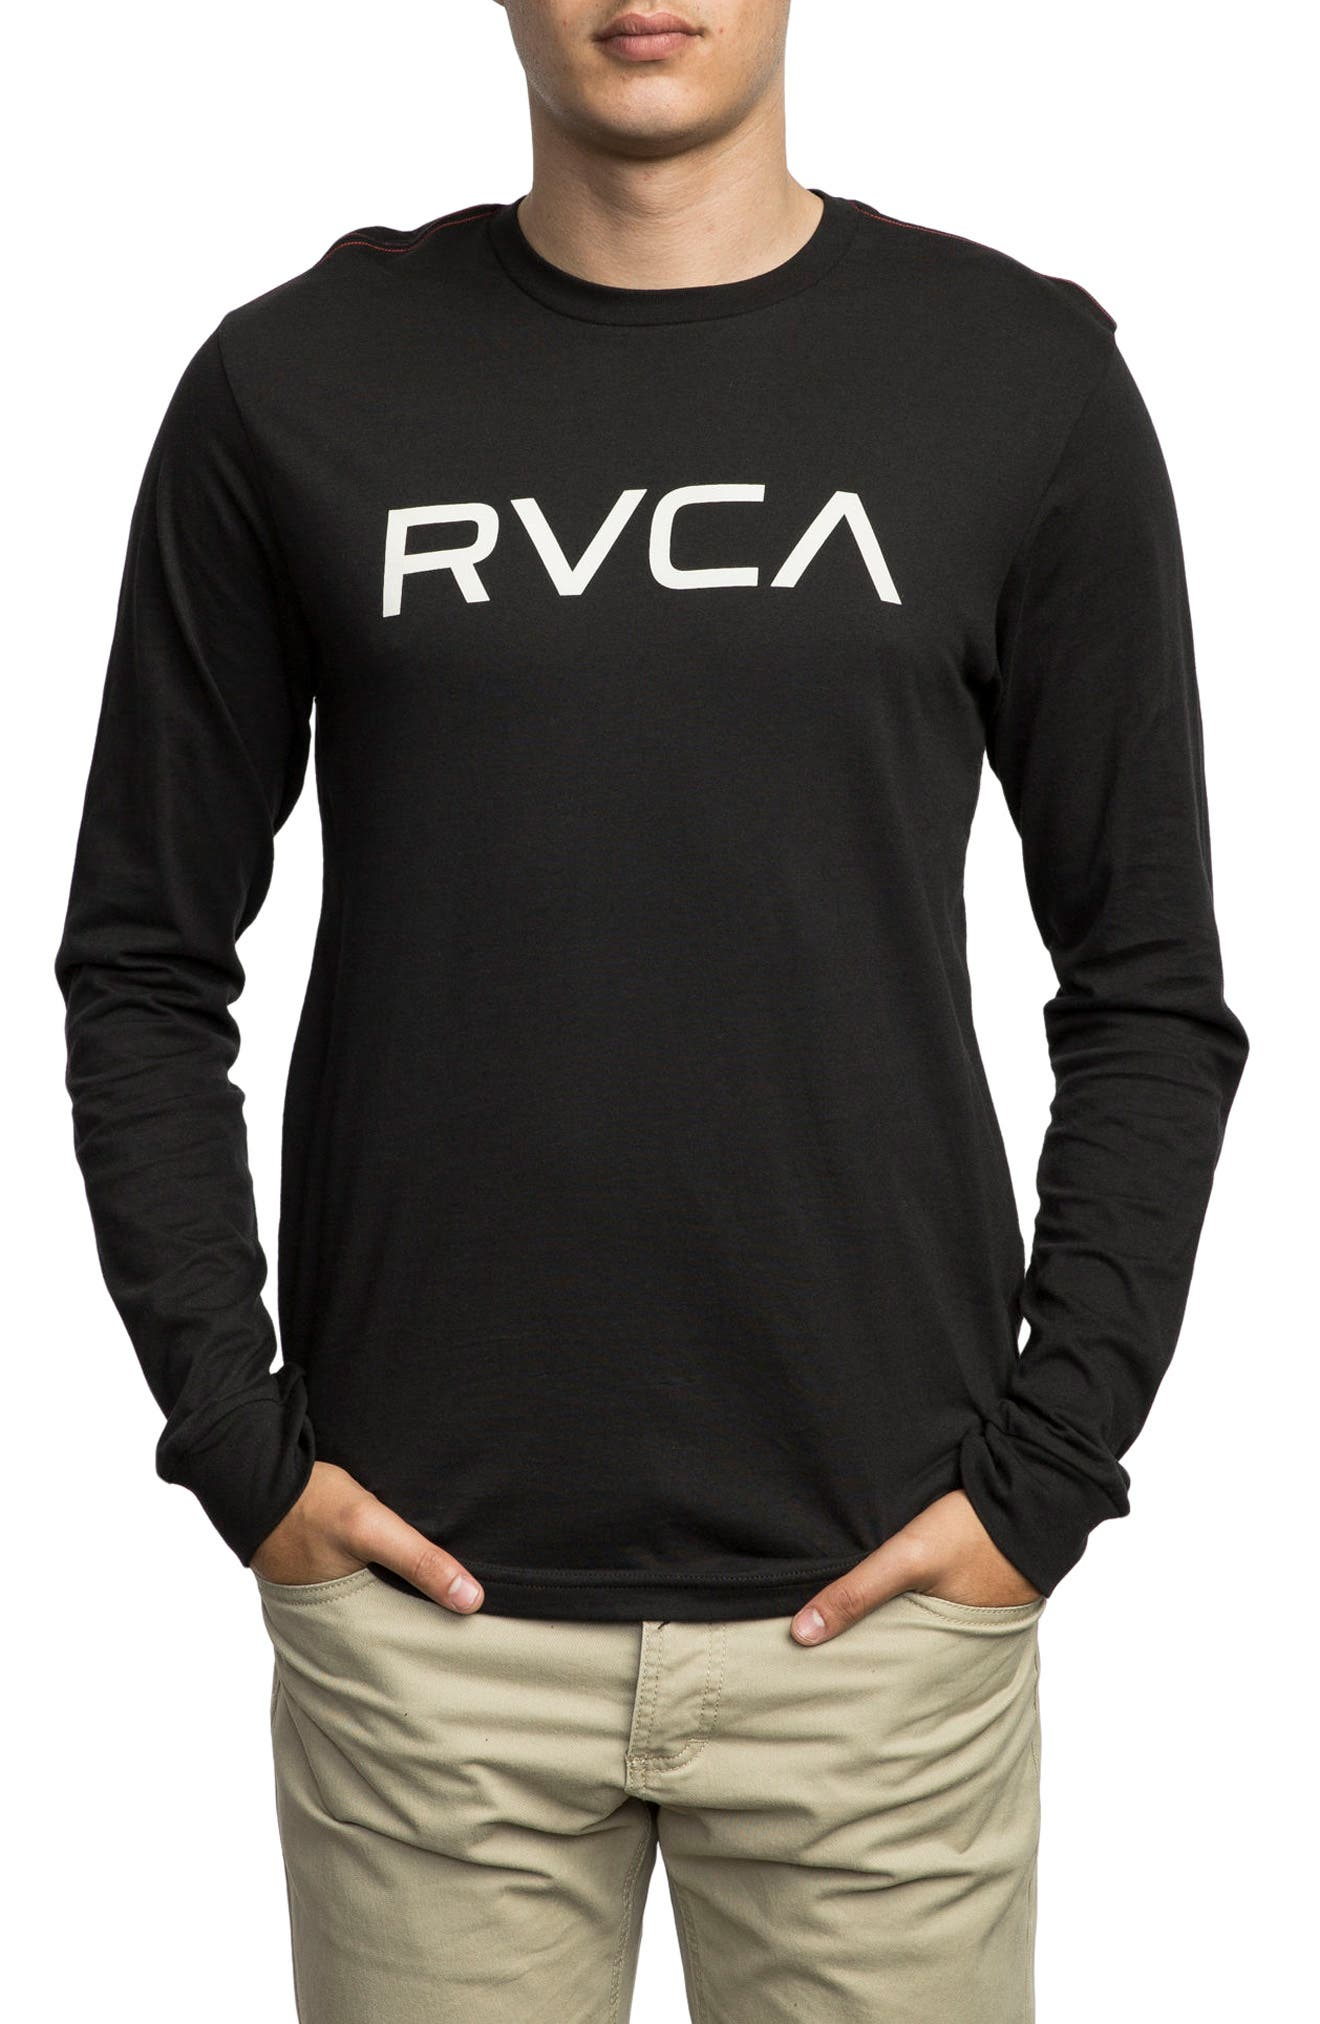 RVCA Big RVCA Graphic T-Shirt